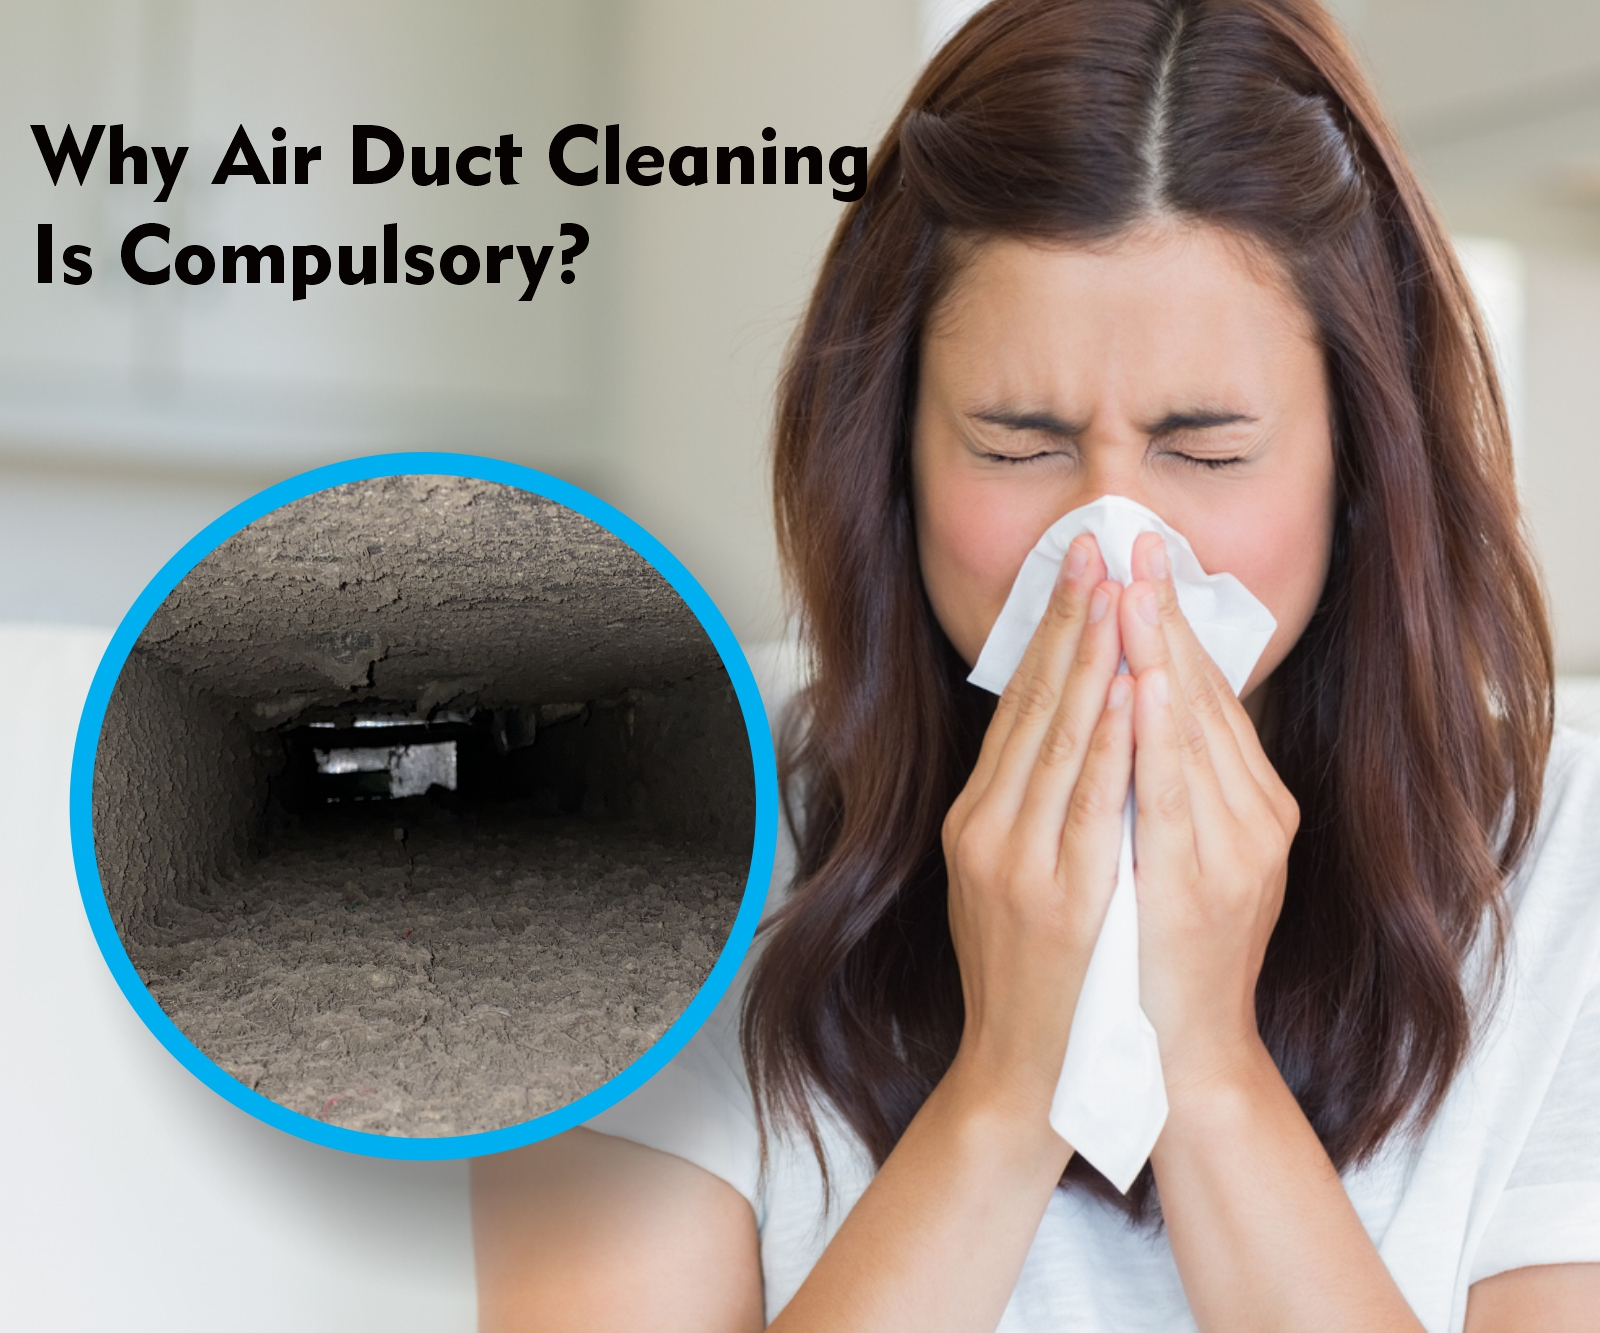 why airduct cleaning is compulsory?